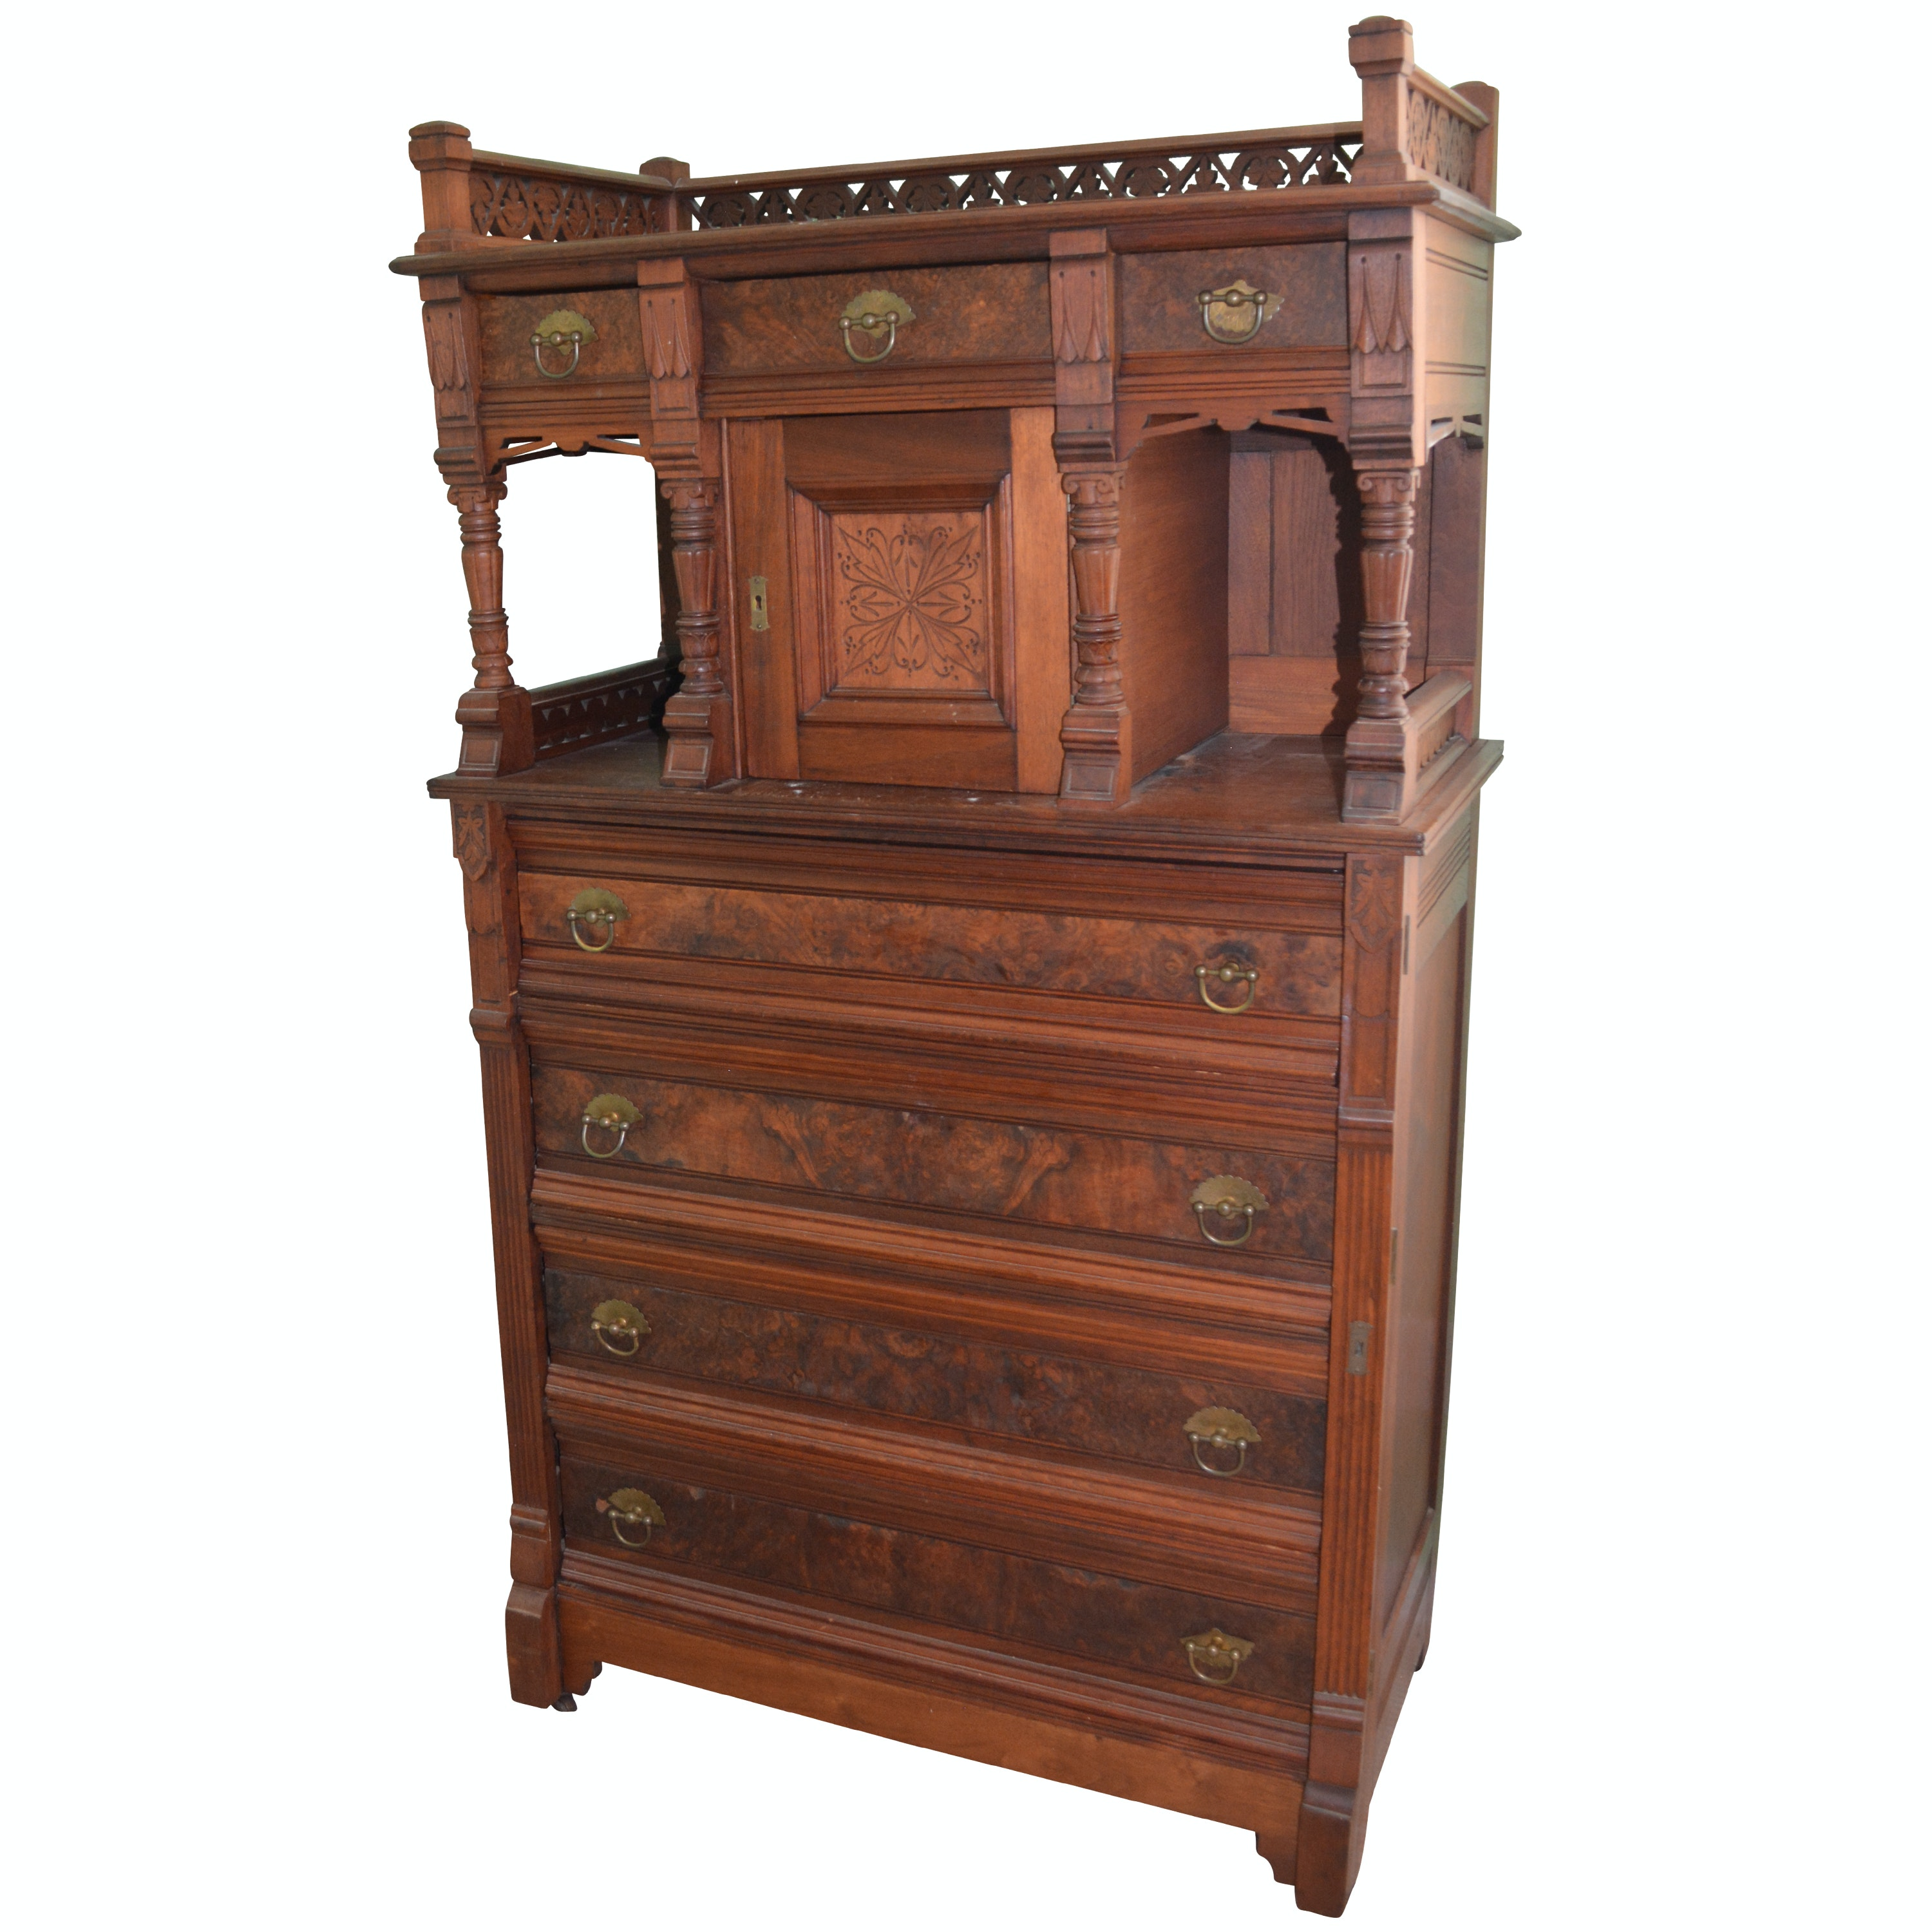 Aesthetic-Movement Walnut Tall Chest of Drawers